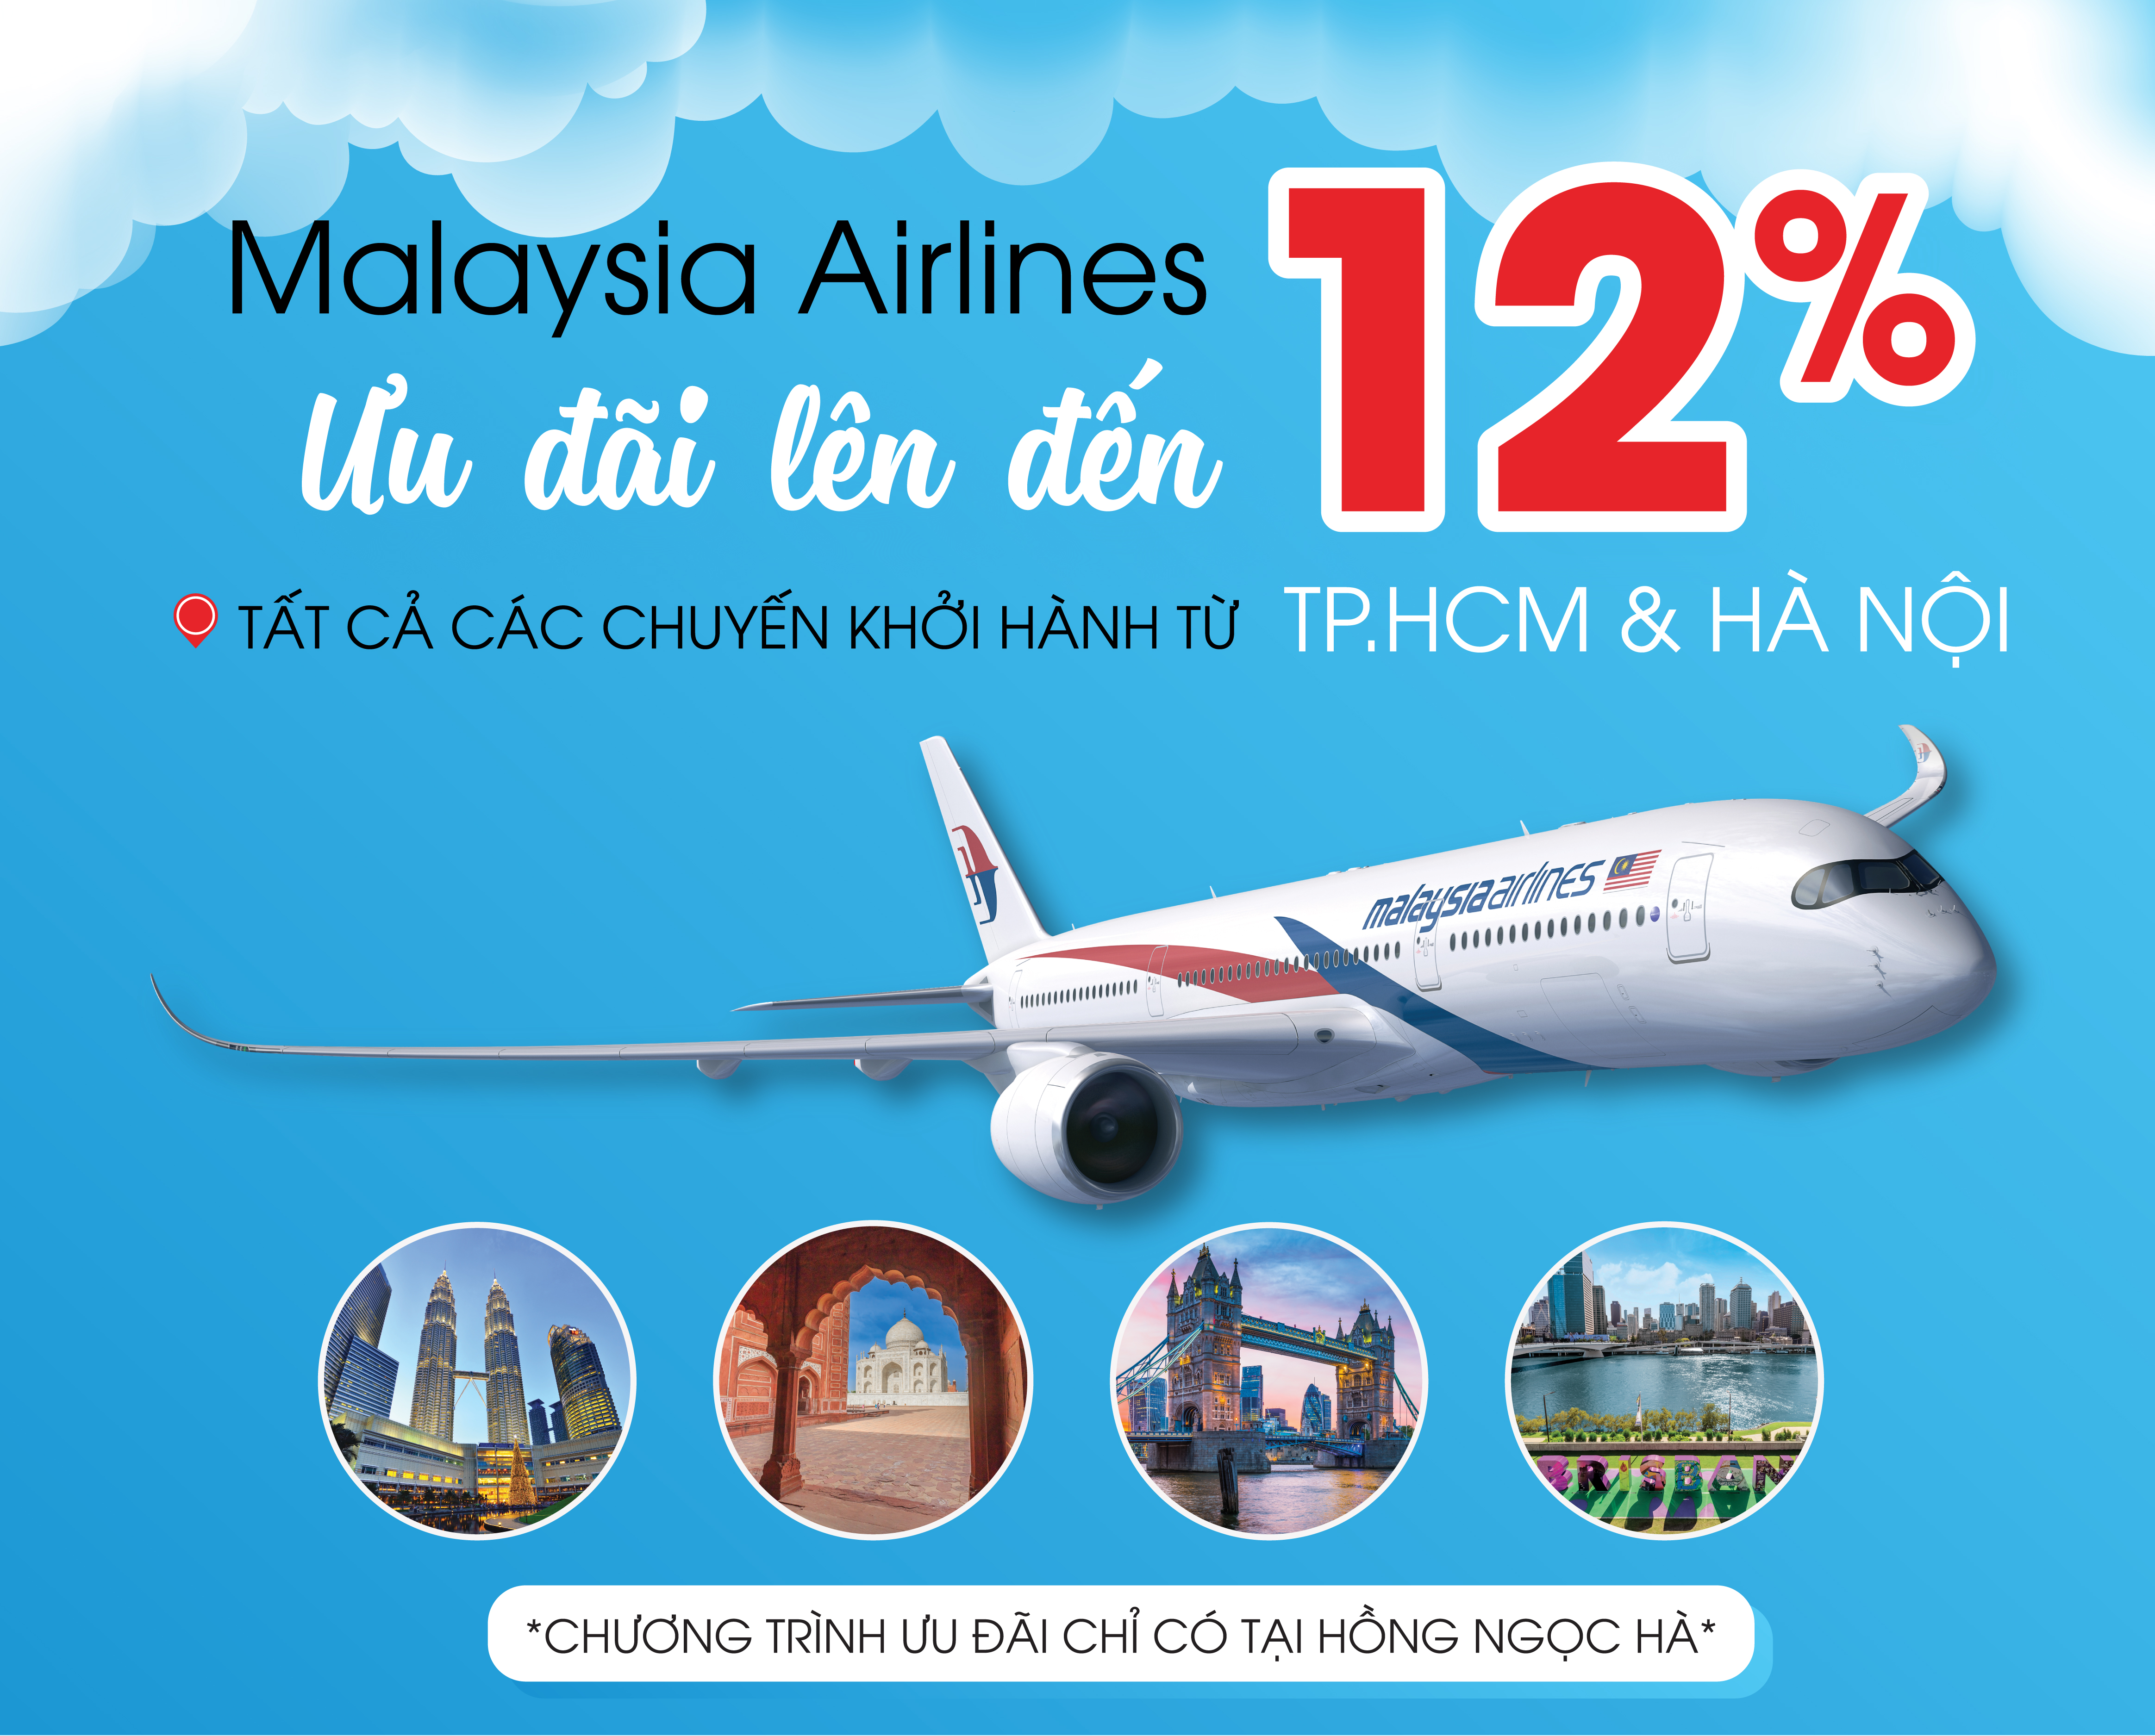 Malaysia Airlines deals up to 12%